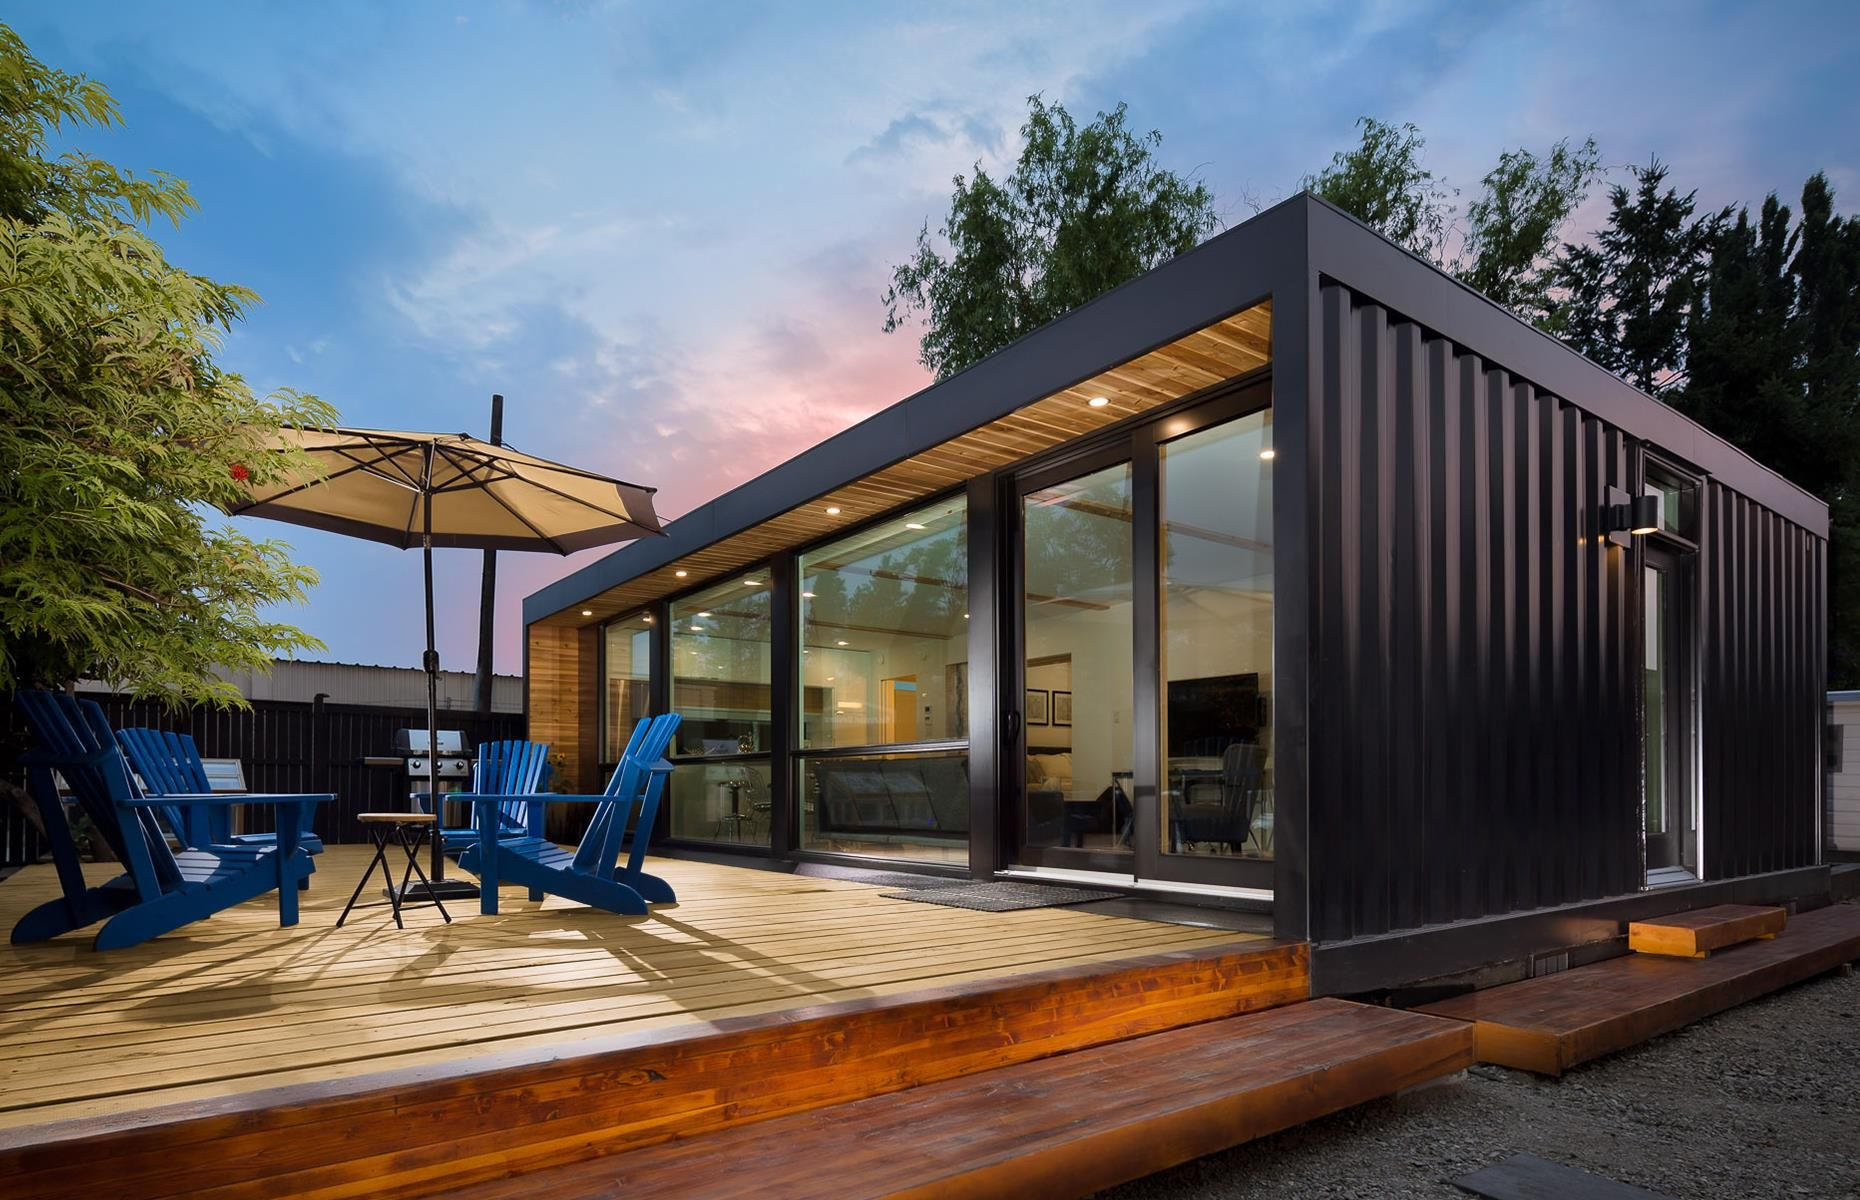 18 Ideas Container House Luxury Beautiful For These Cheap Container Homes Cost Next To Nothing Container Homes Cost Container House Container House Design